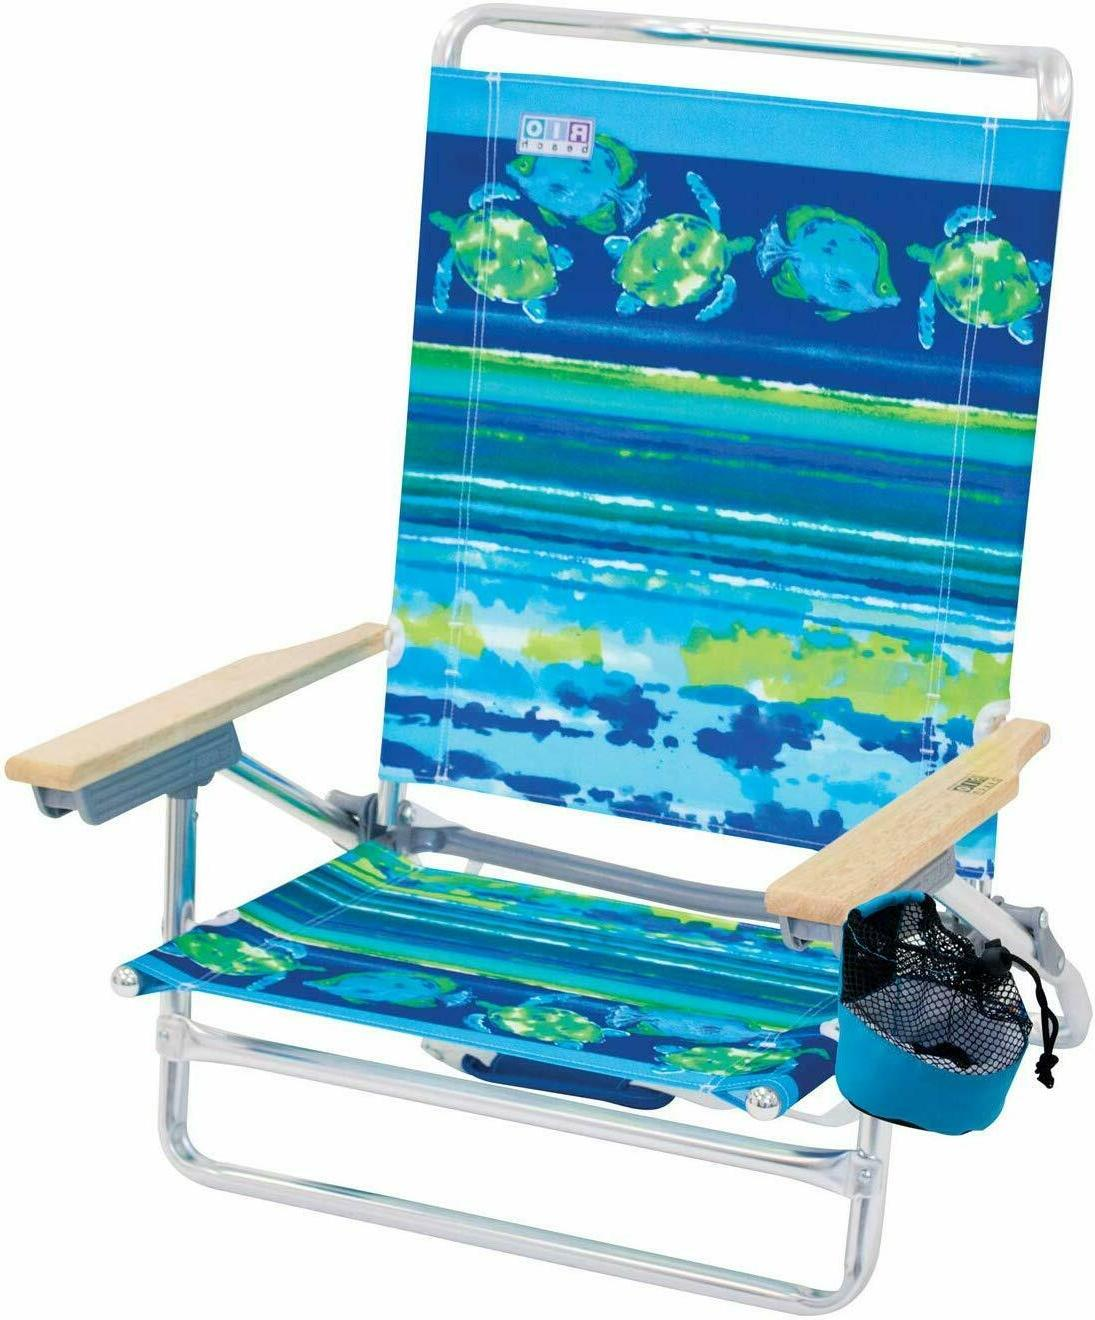 Rio Beach Position Lay Folding Beach Chair